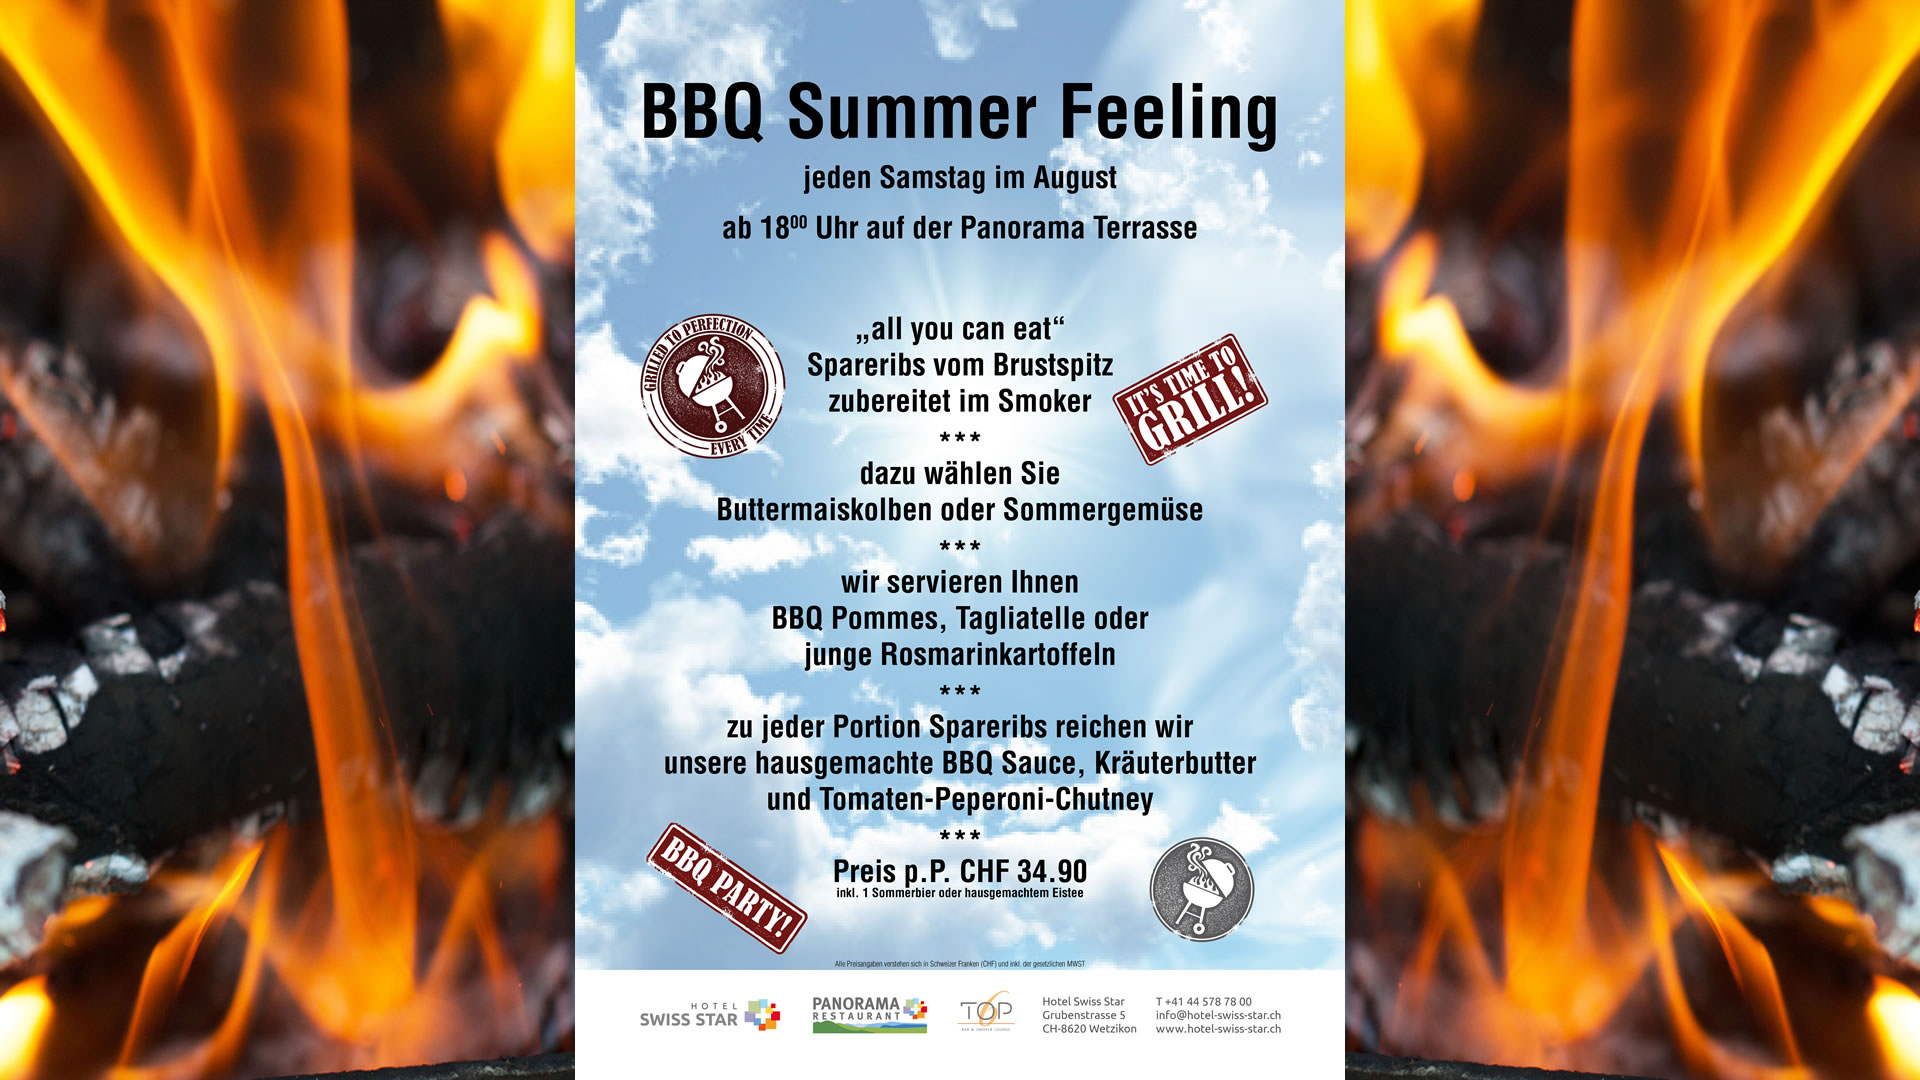 <span style=&quot;color: #000000&quot;><a href=&quot;http://www.hotel-swiss-star.ch/wp/wp-content/uploads/2015/04/2017_BBQ_A4-Panorama-Restaurant-im-Hotel-Swiss-Star.pdf&quot; target=&quot;_self&quot;><span style=&quot;color: #ffffff&quot;>BBQ Summer Feeling</span> 	</a>